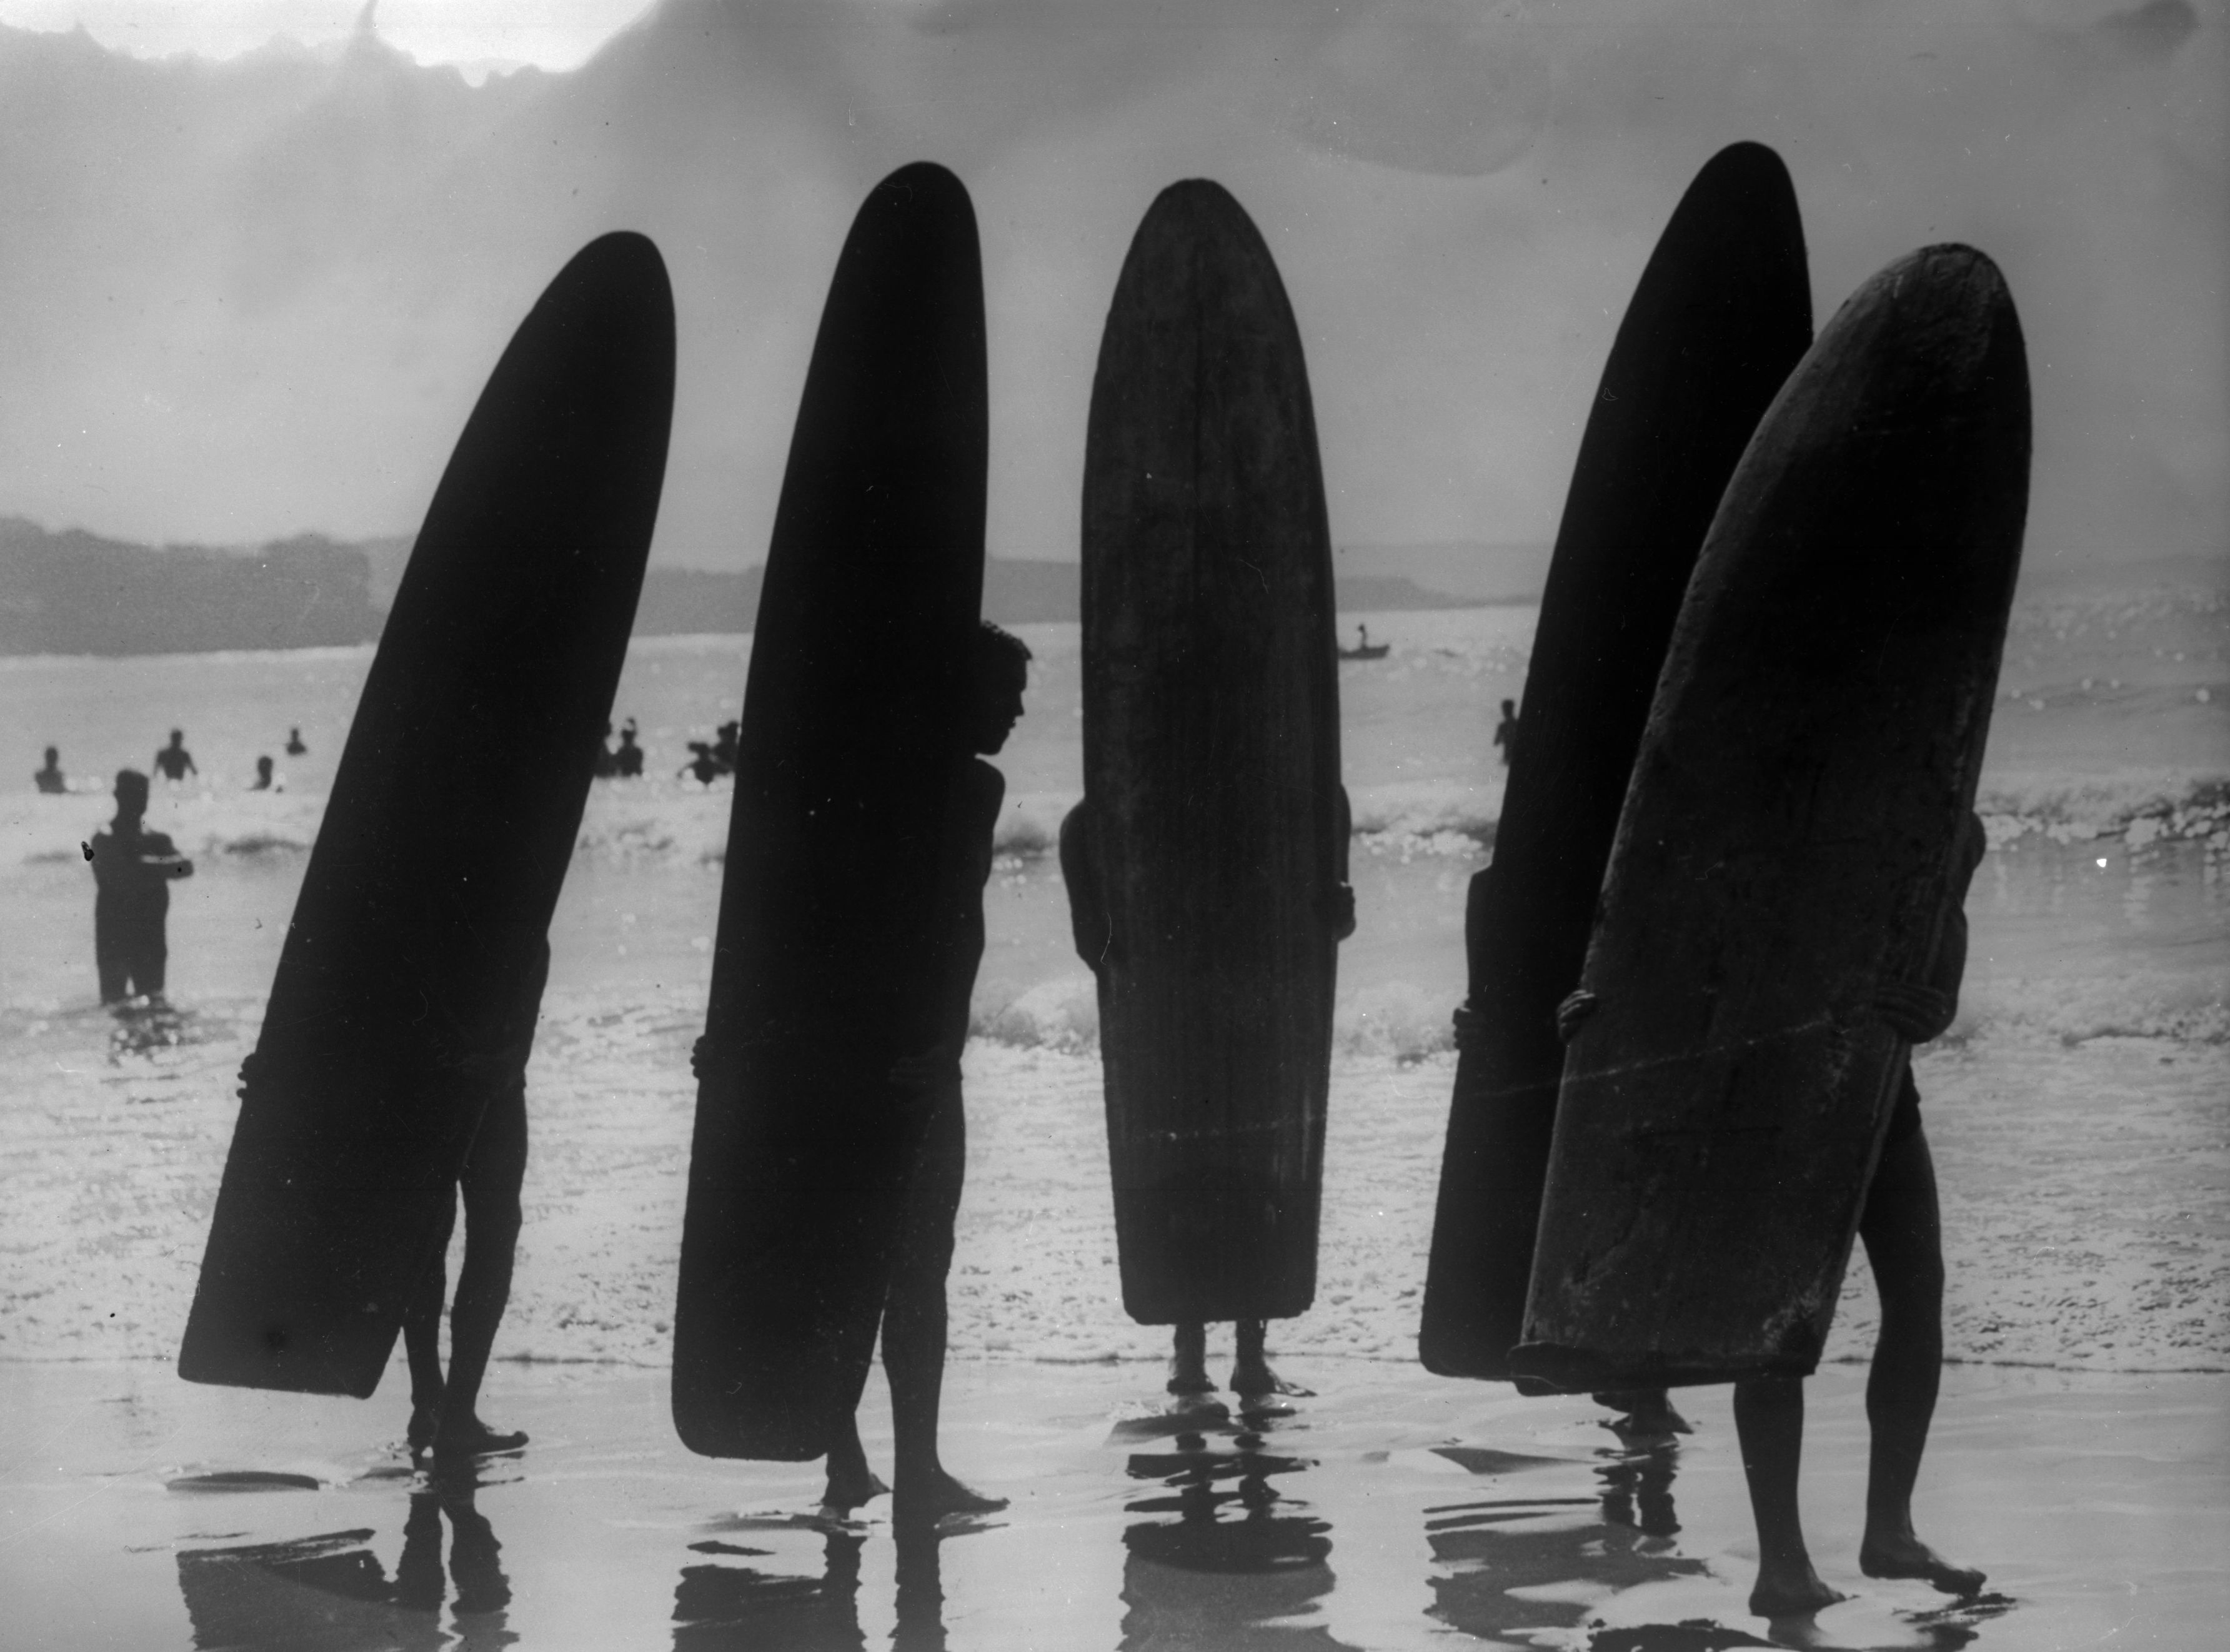 22nd June 1930: A group of surfers on a beach in Sydney, Australia. (Photo by Fox Photos/Getty Images)